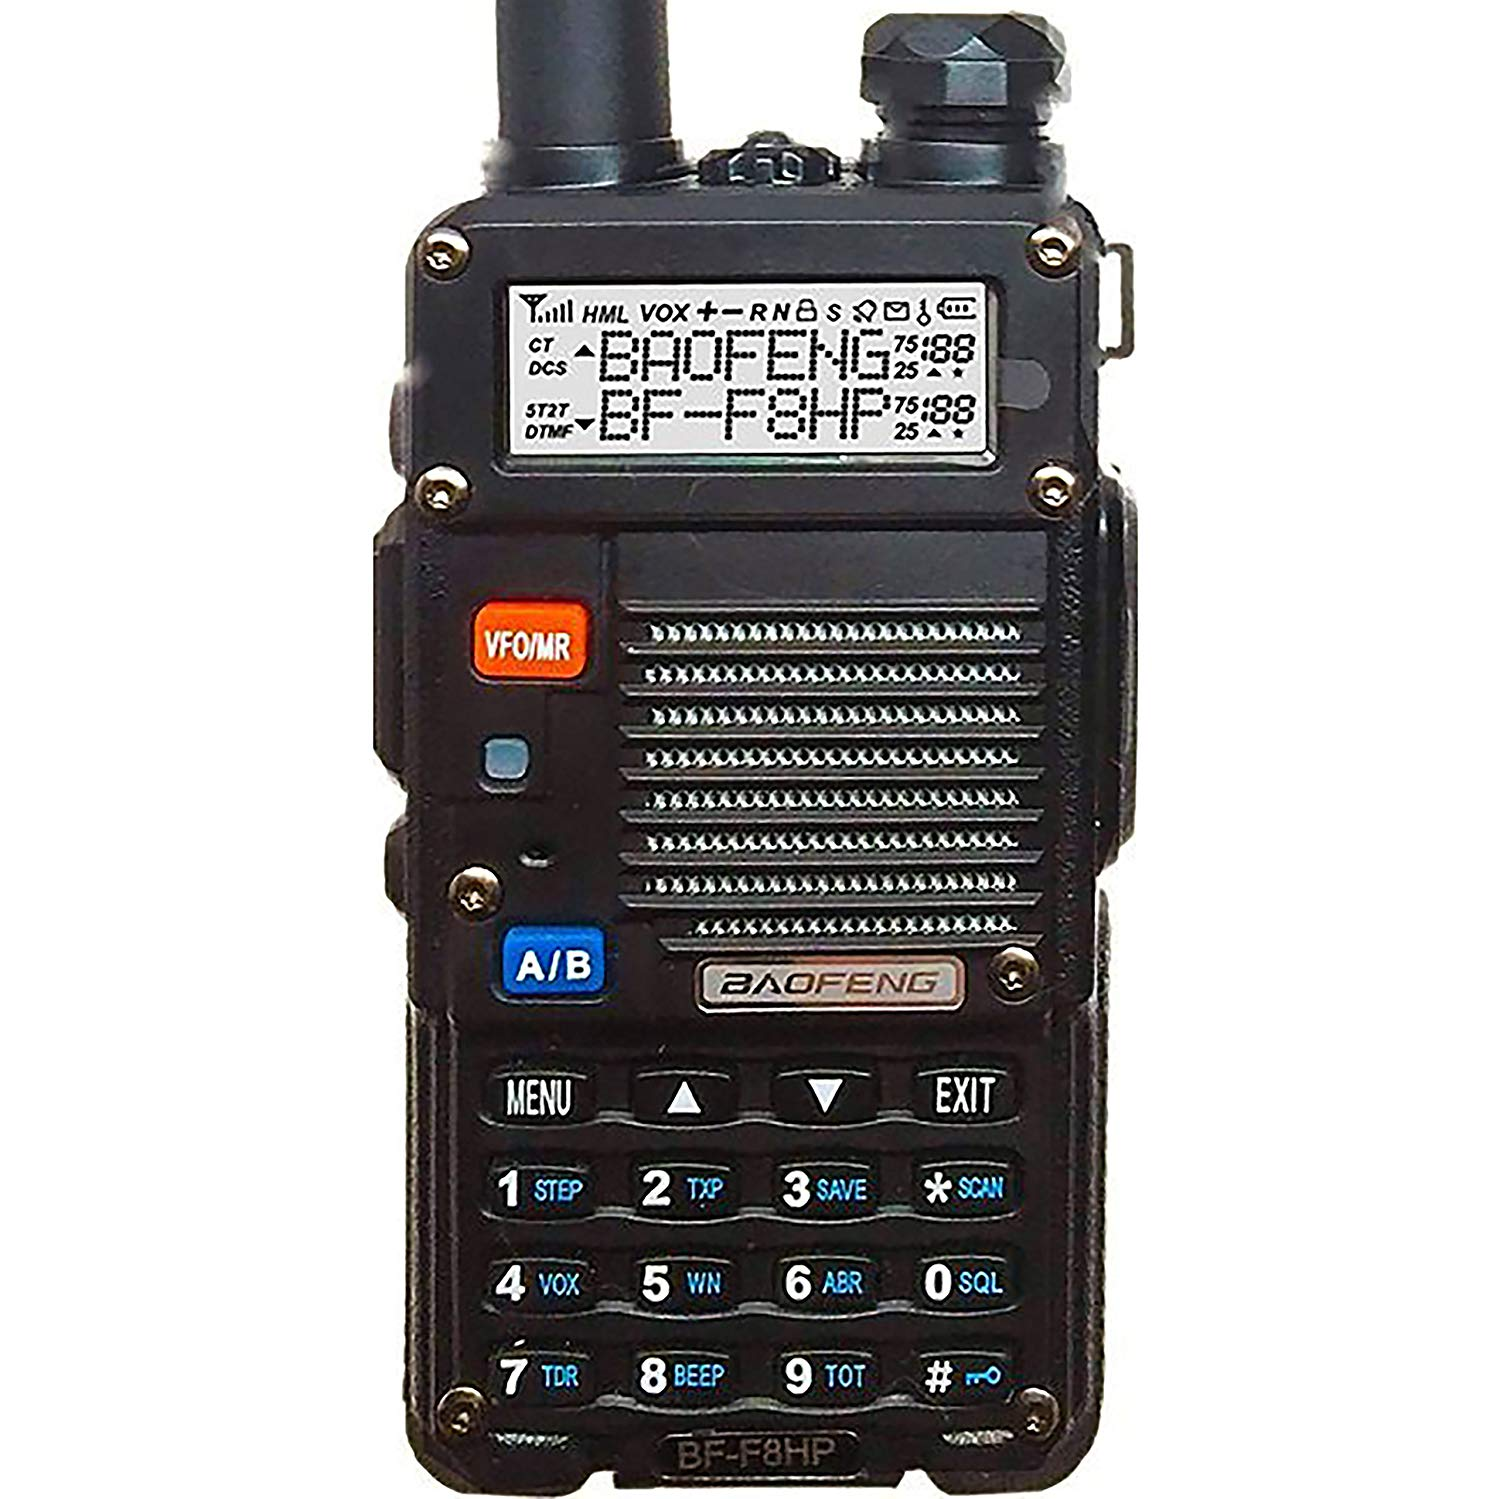 How To Connect Baofeng Walkie Talkie